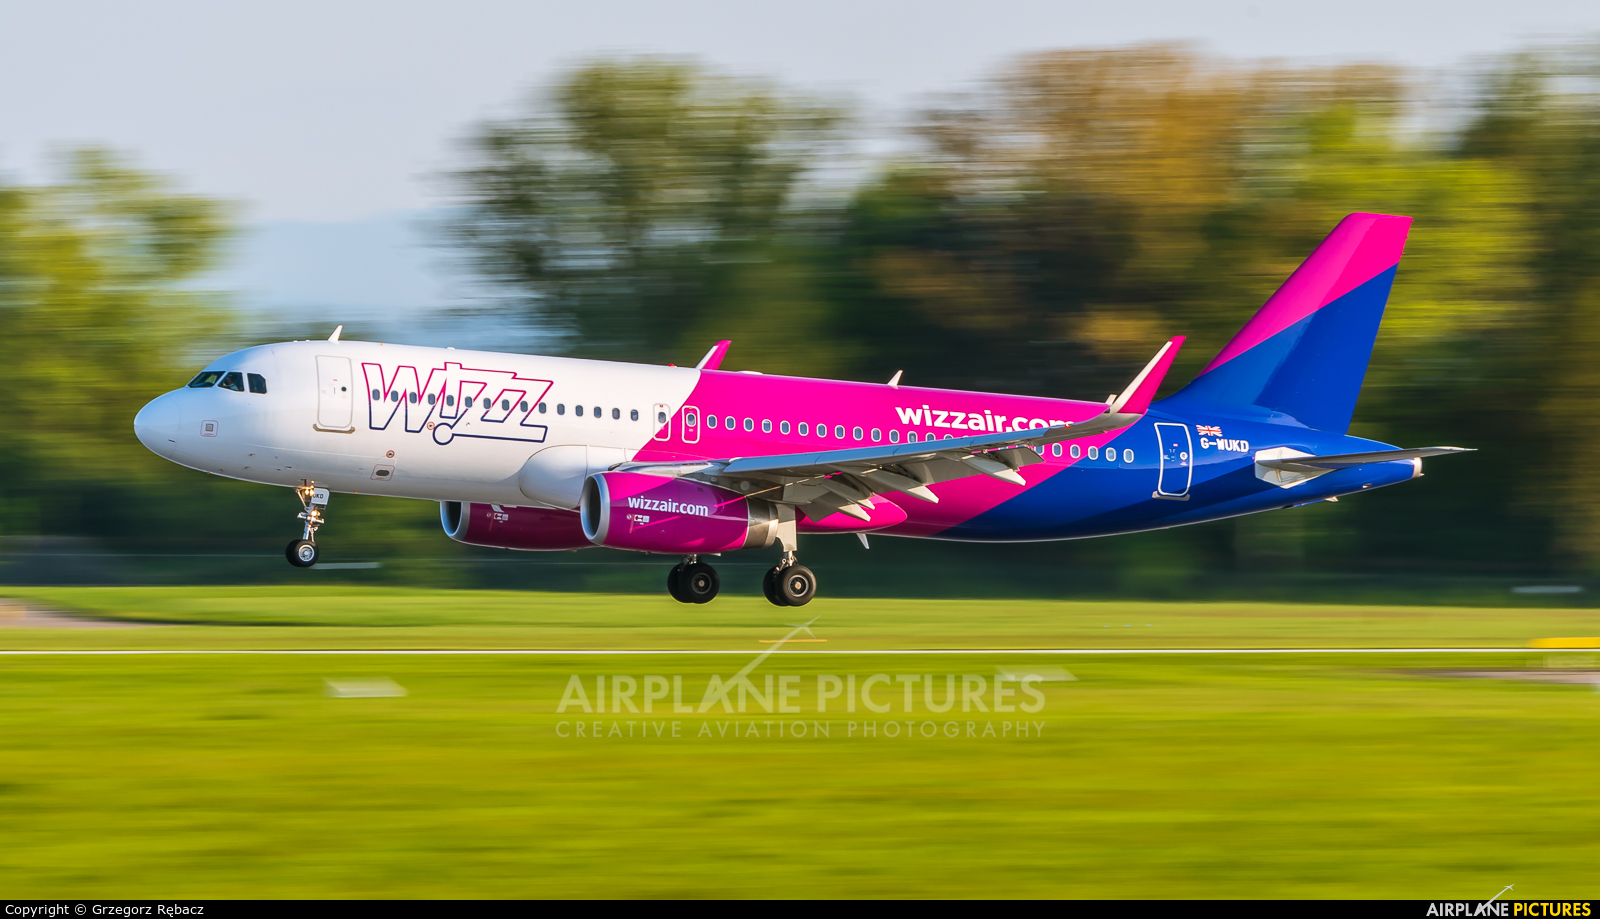 Wizz Air UK G-WUKD aircraft at Kraków - John Paul II Intl